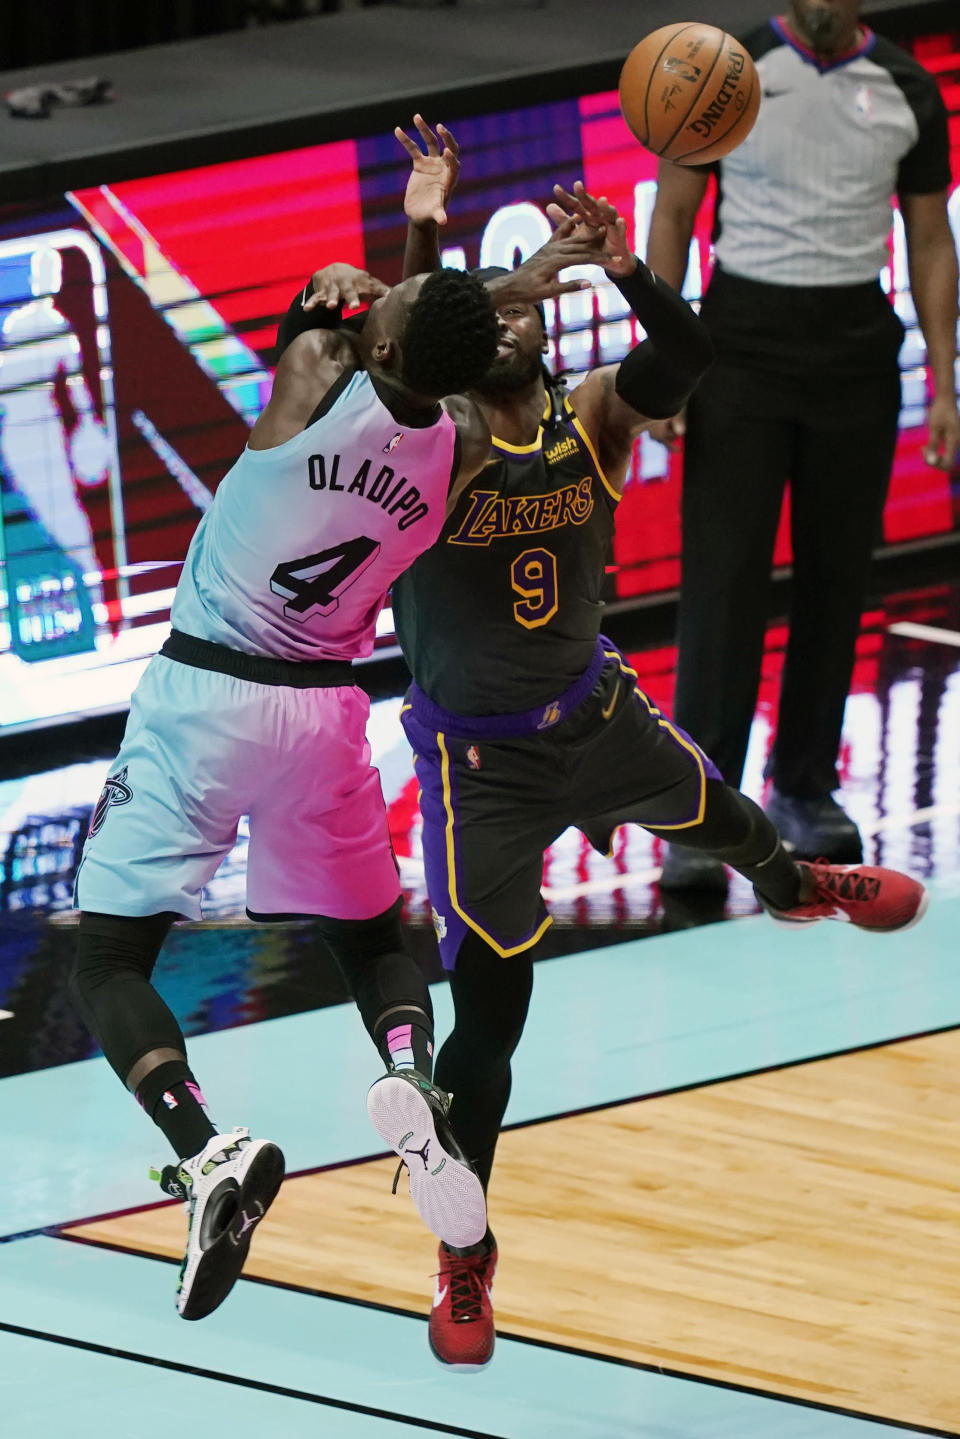 Los Angeles Lakers guard Wesley Matthews (9) fouls Miami Heat guard Victor Oladipo (4) during the first half of an NBA basketball game, Thursday, April 8, 2021, in Miami. (AP Photo/Marta Lavandier)